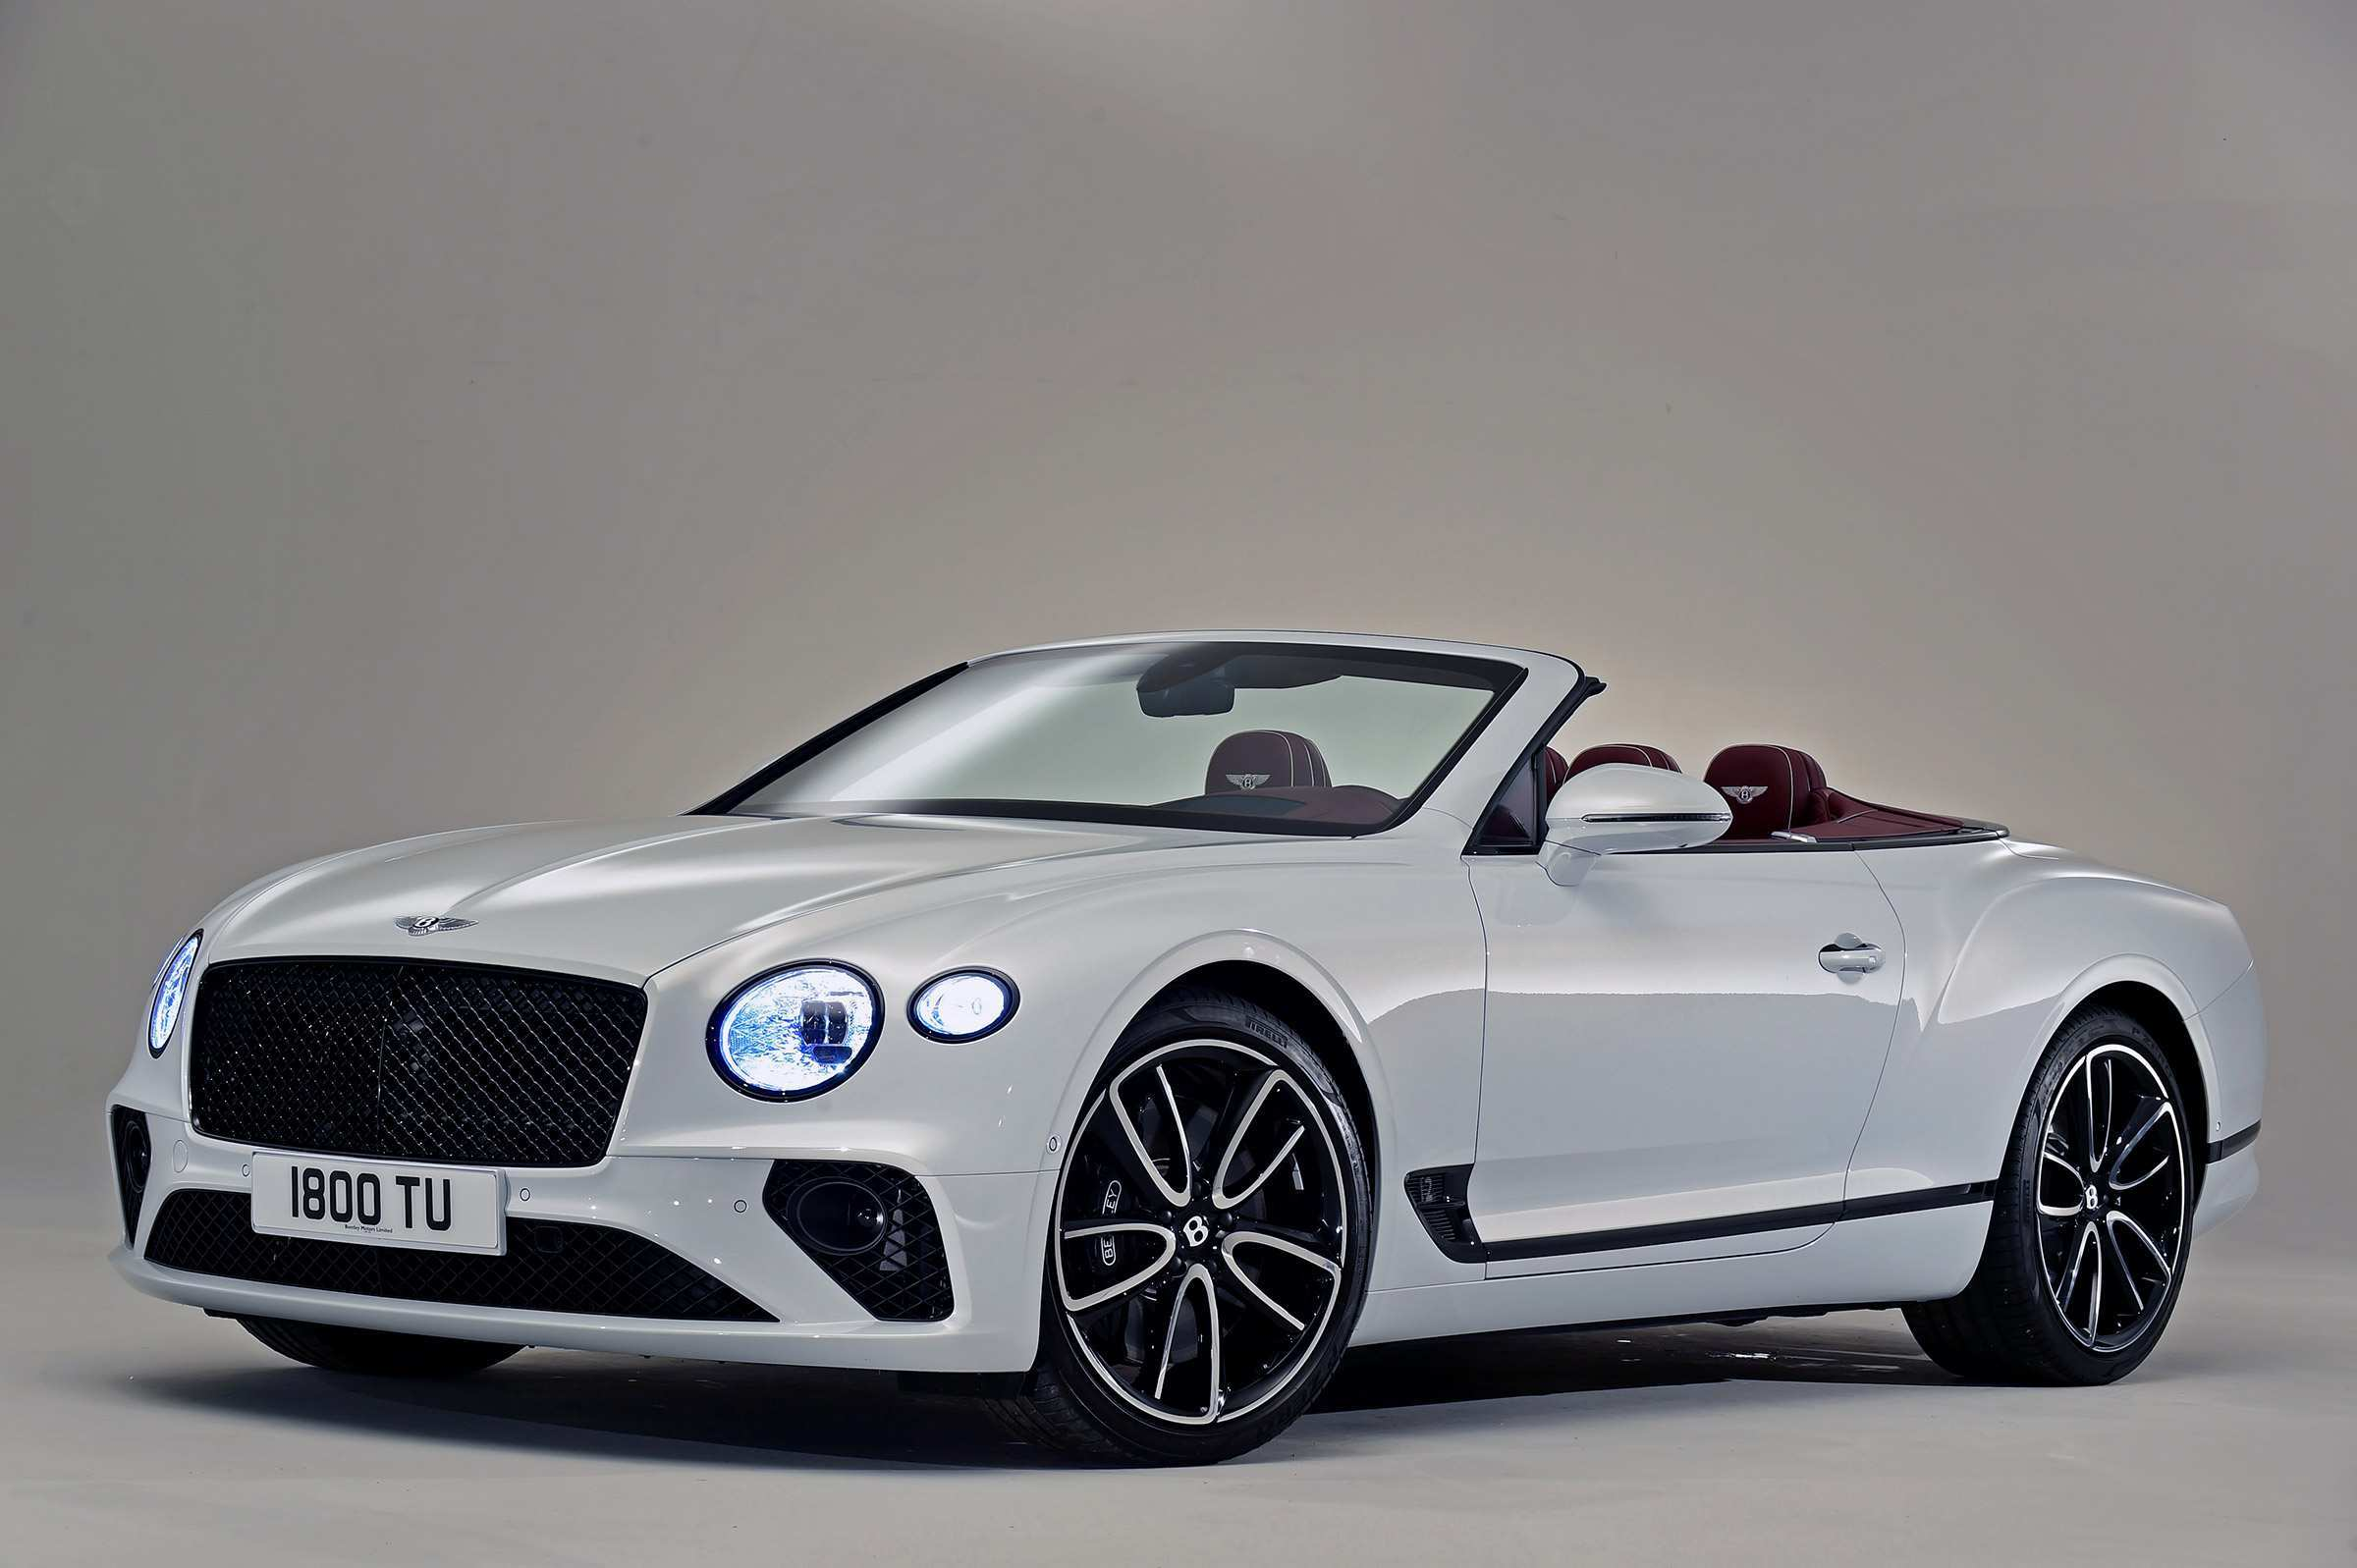 98 Great 2019 Bentley Price Exterior with 2019 Bentley Price